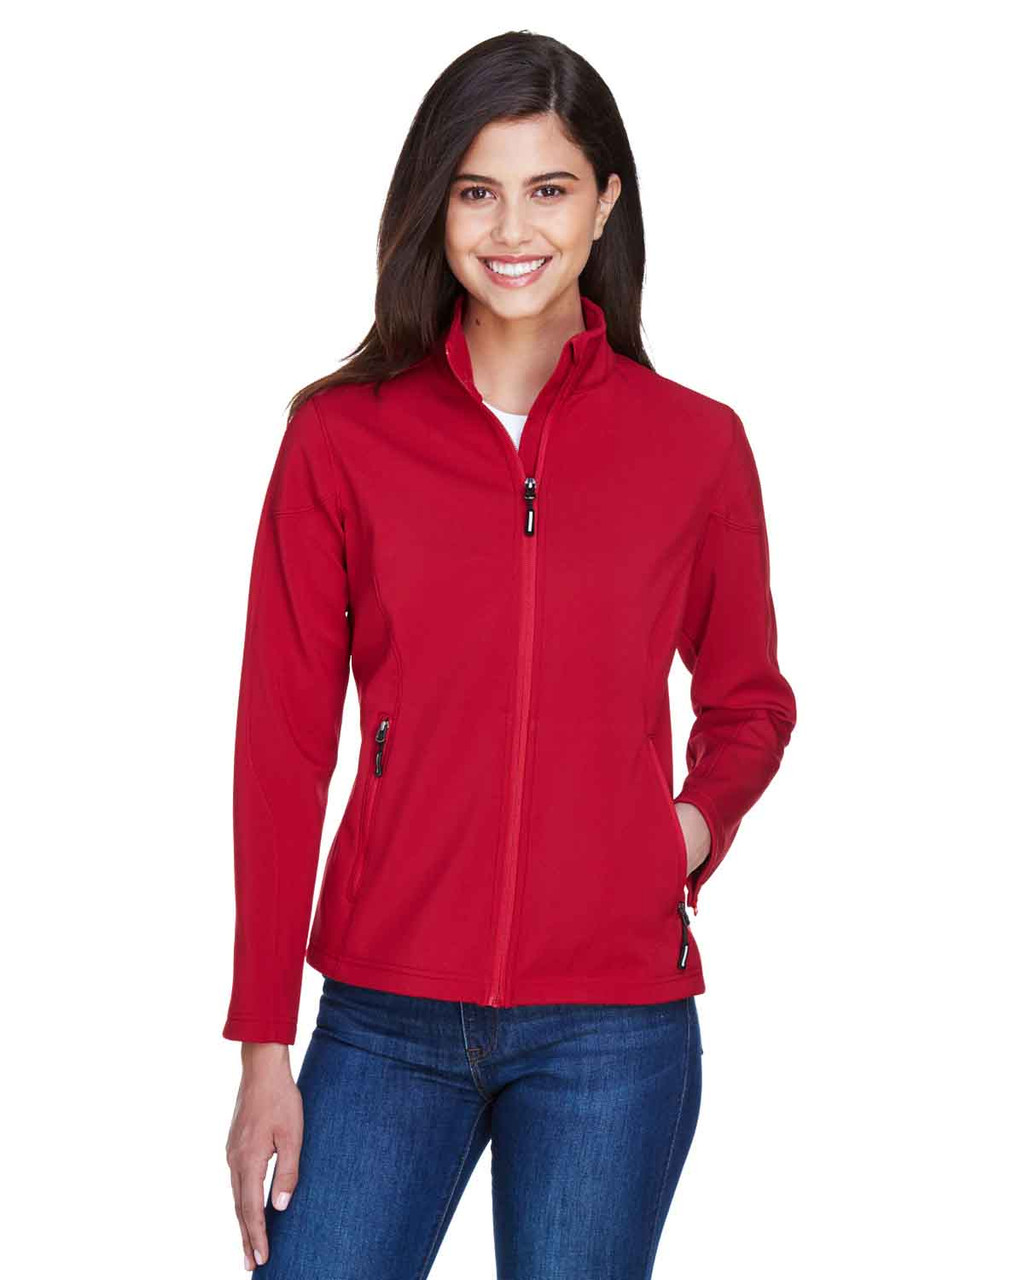 Classic Red - 78184 Core 365 Ladies' Fleece Soft Shell Jacket | Blankclothing.ca